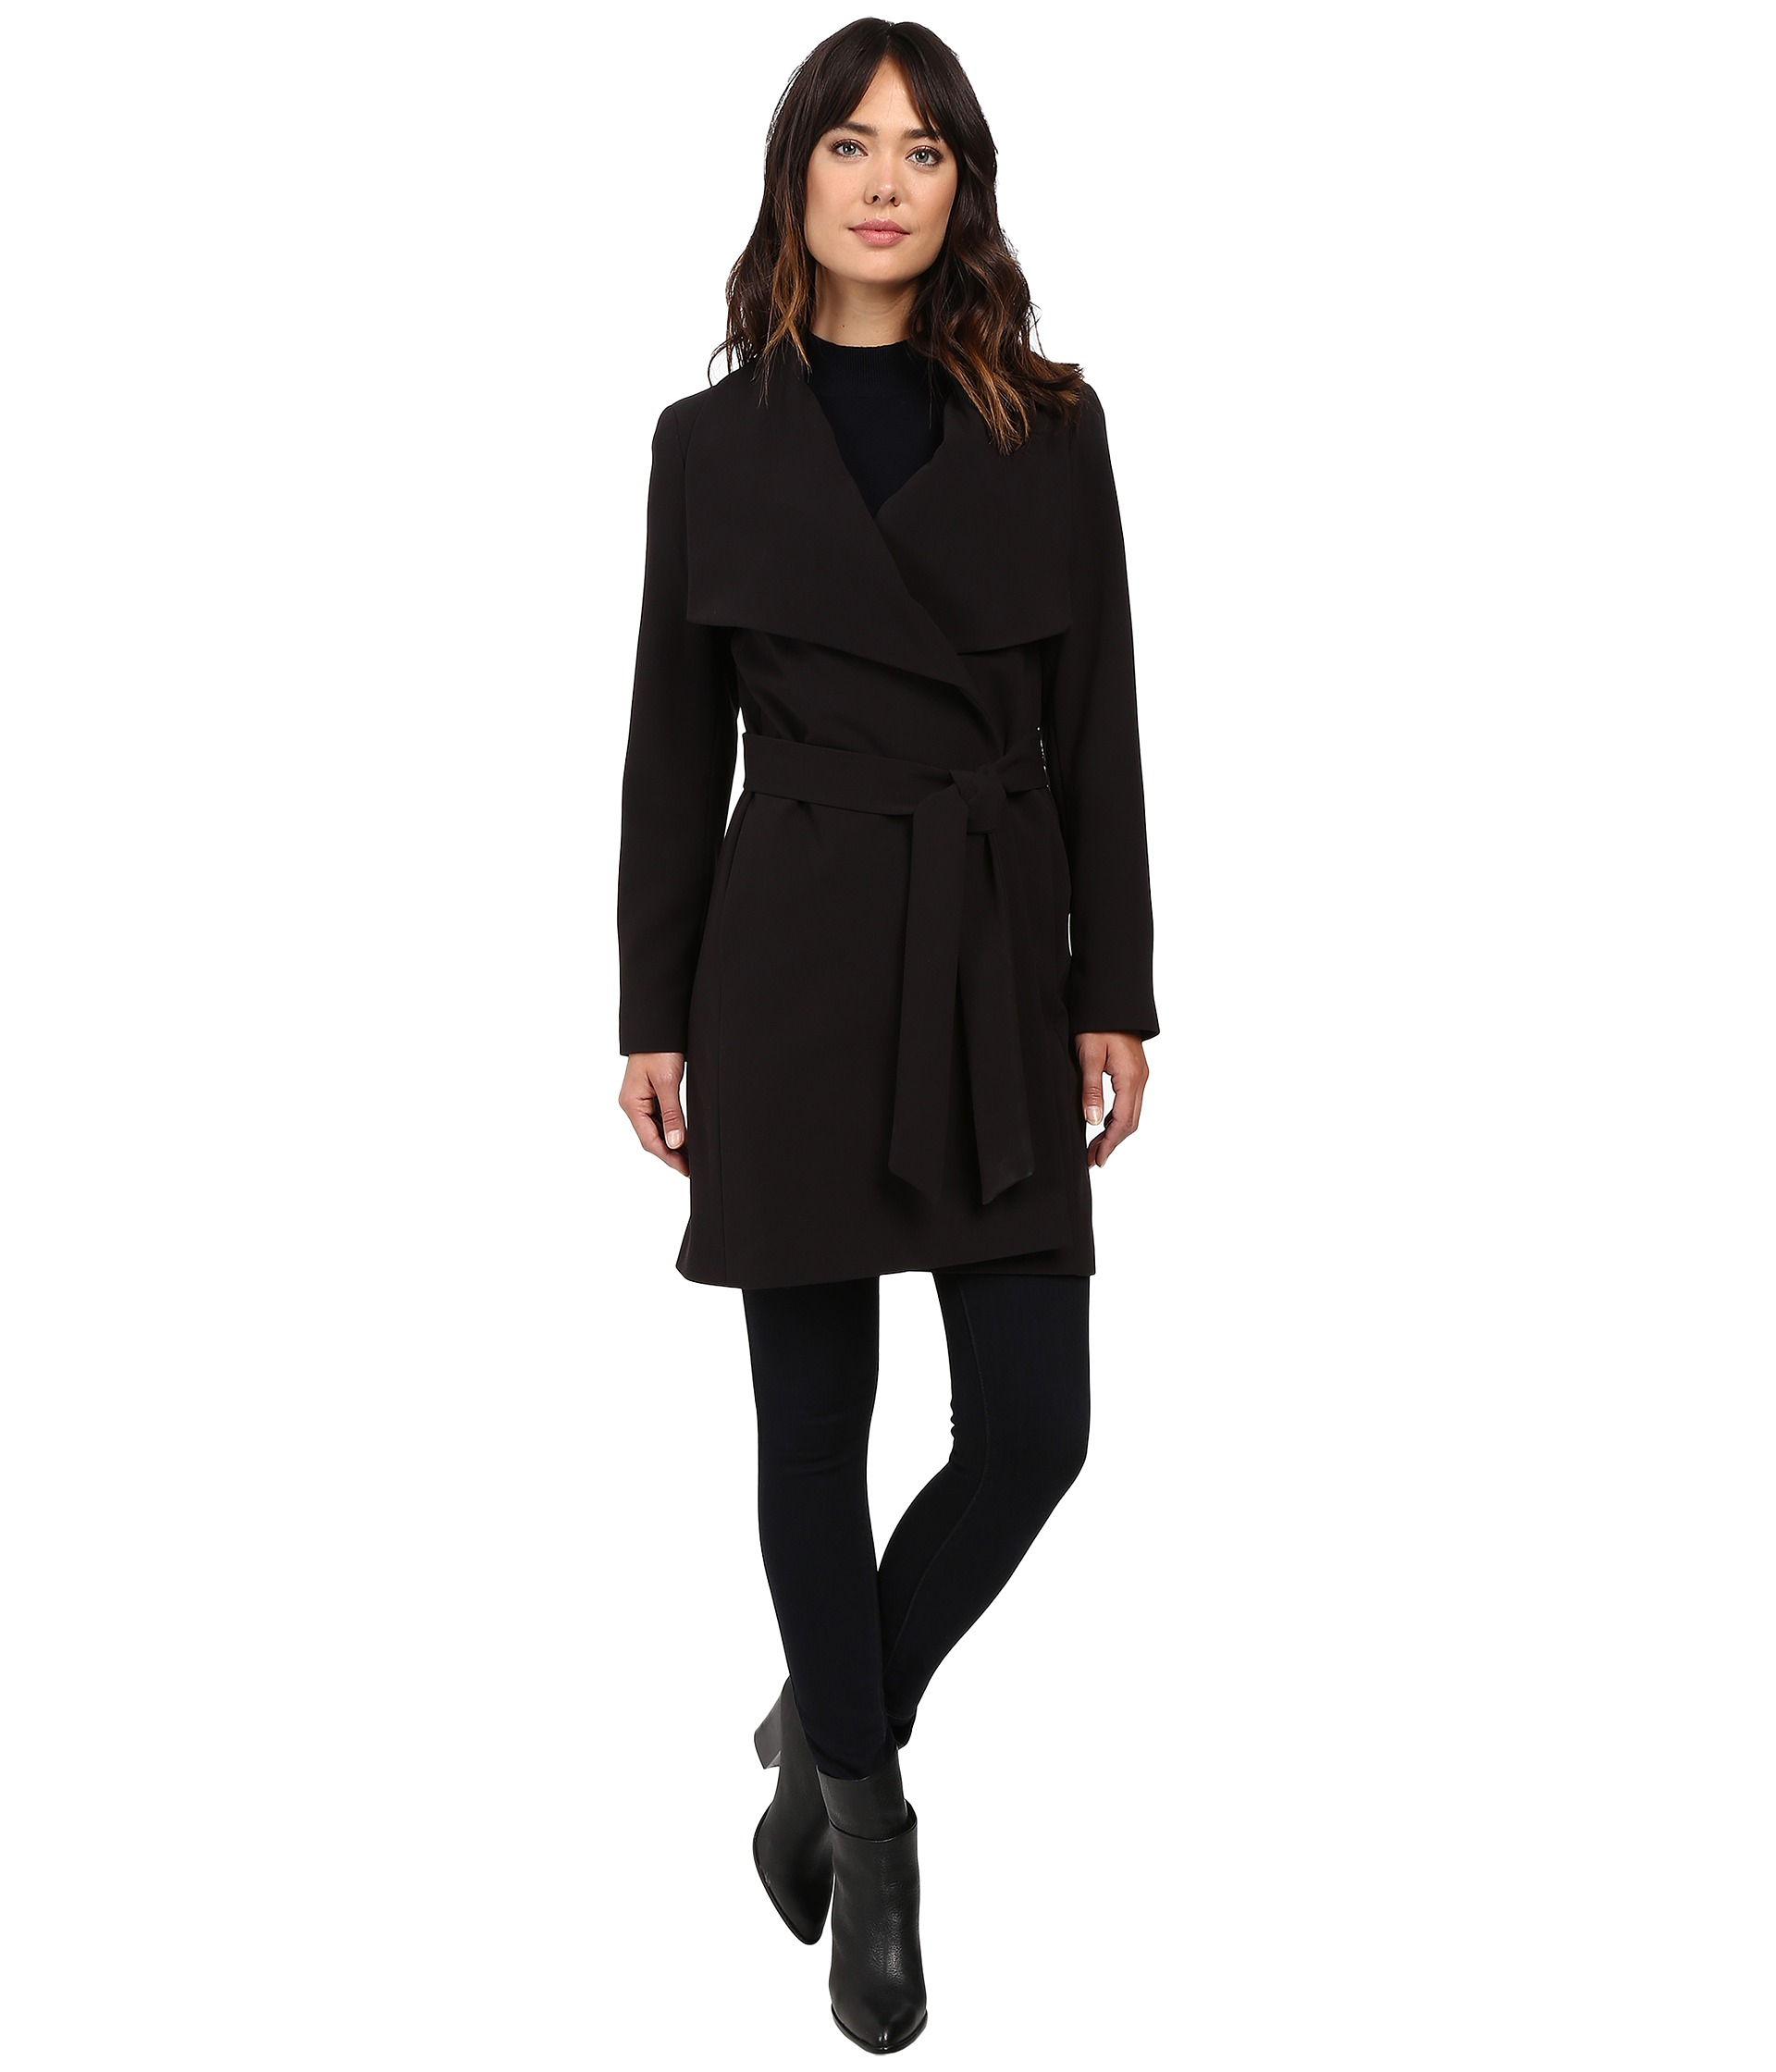 Getting the right pea coats for women